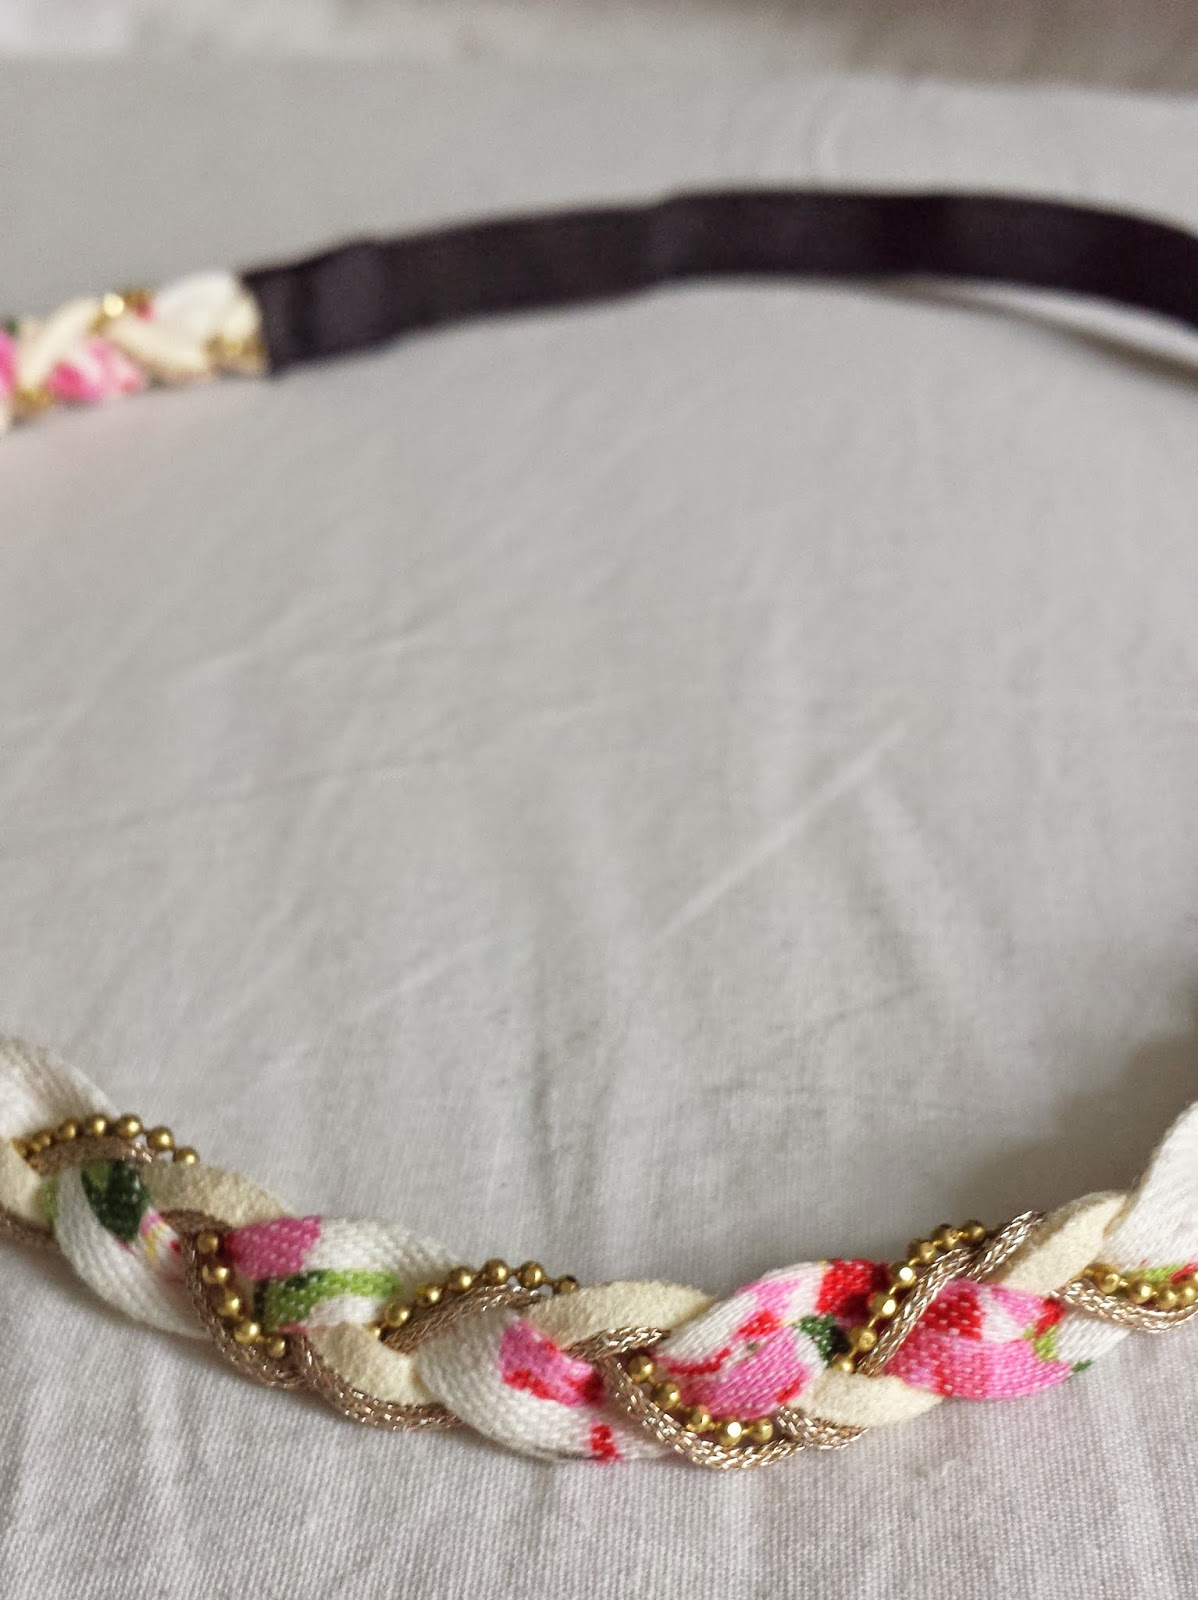 Clothes & Dreams: Self-rewarding during exams (shoplog): detail of Claire's white and pink headband